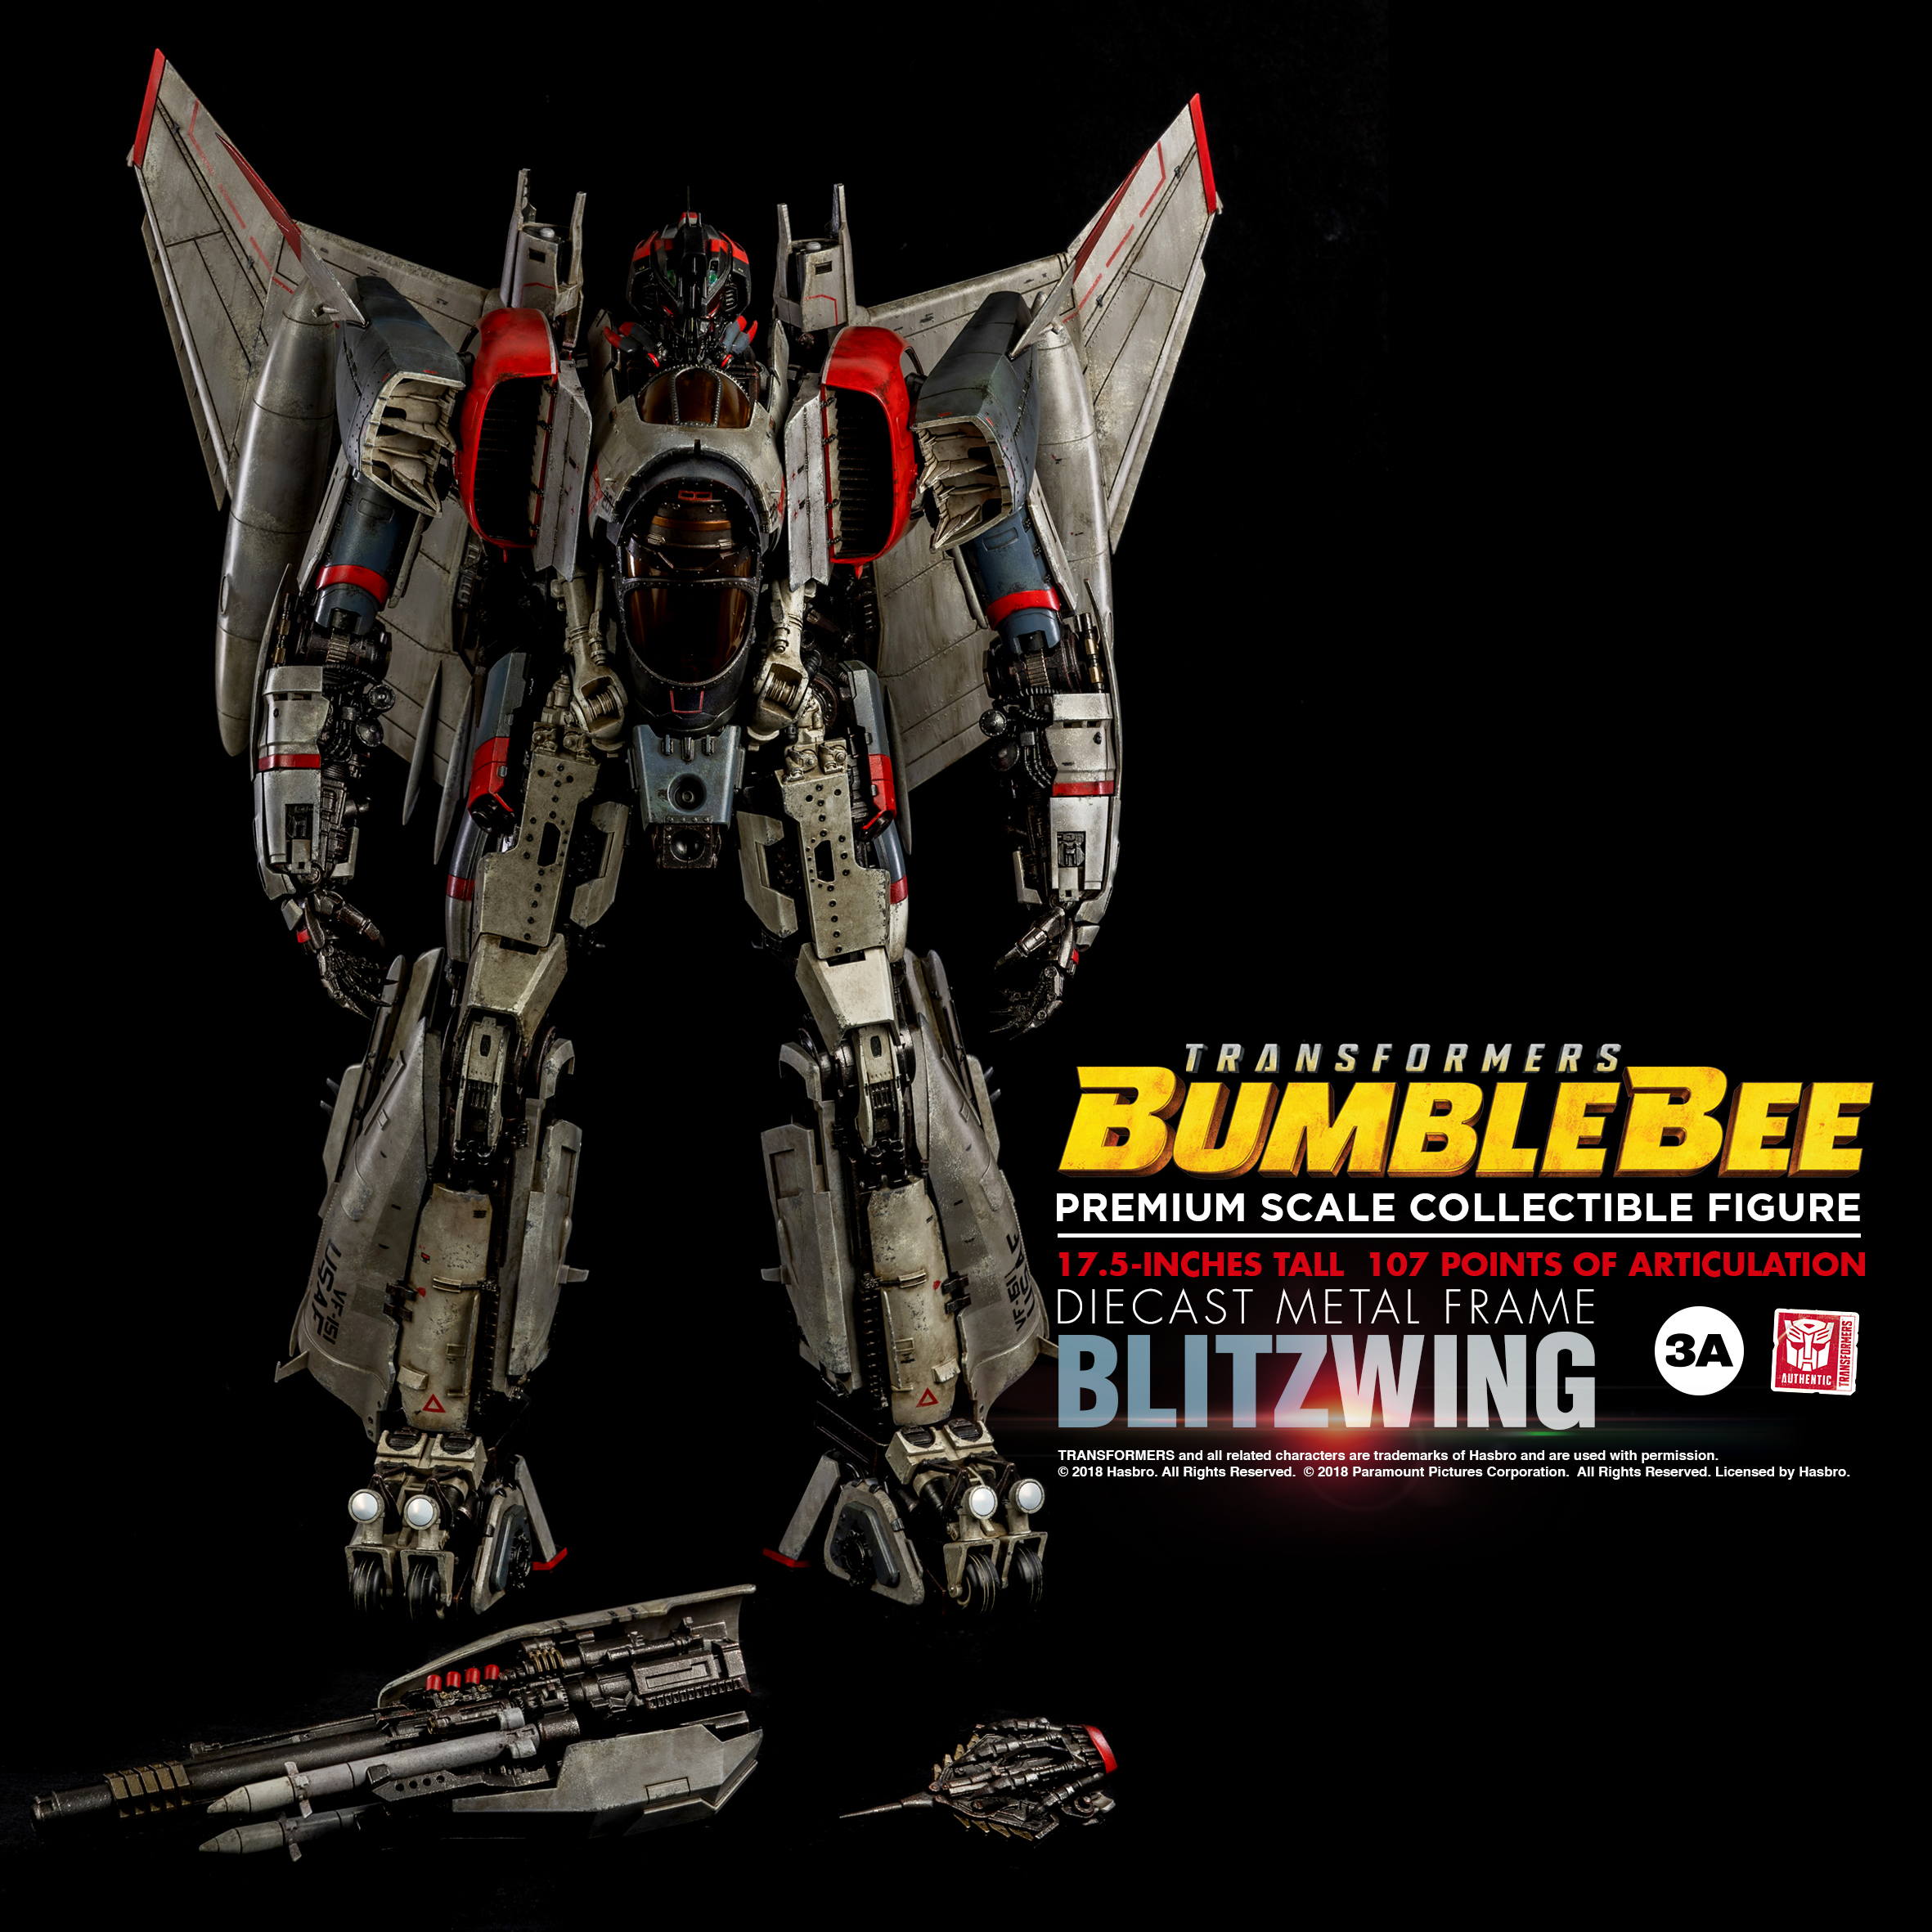 Blitzwing_PM_1134.jpg